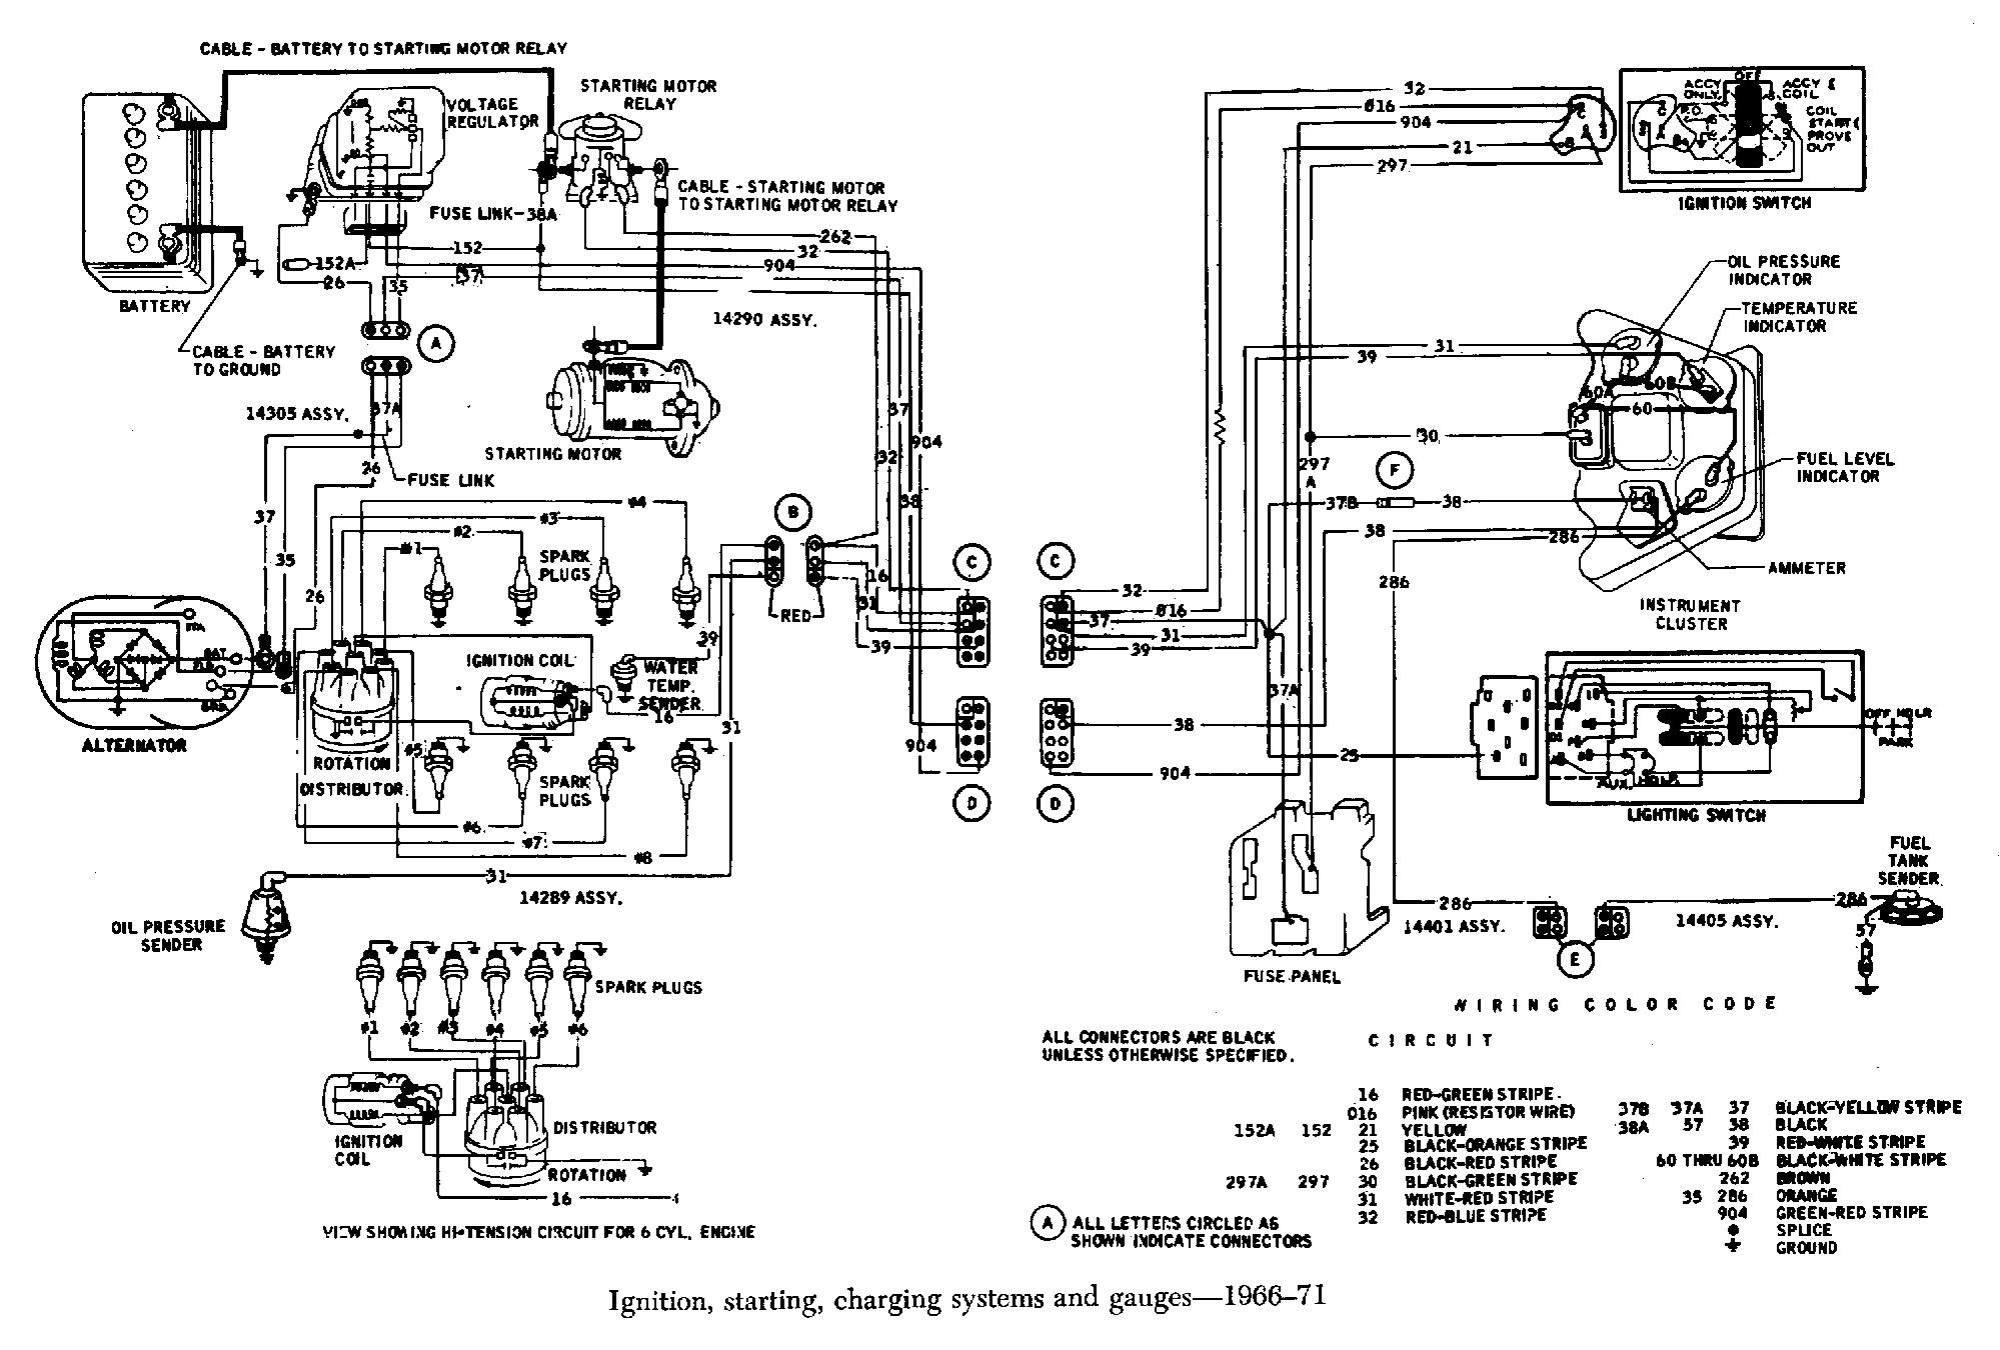 hight resolution of chevy spark wiring diagram wiring diagram used chevy spark radio wiring diagram chevy spark plug wiring